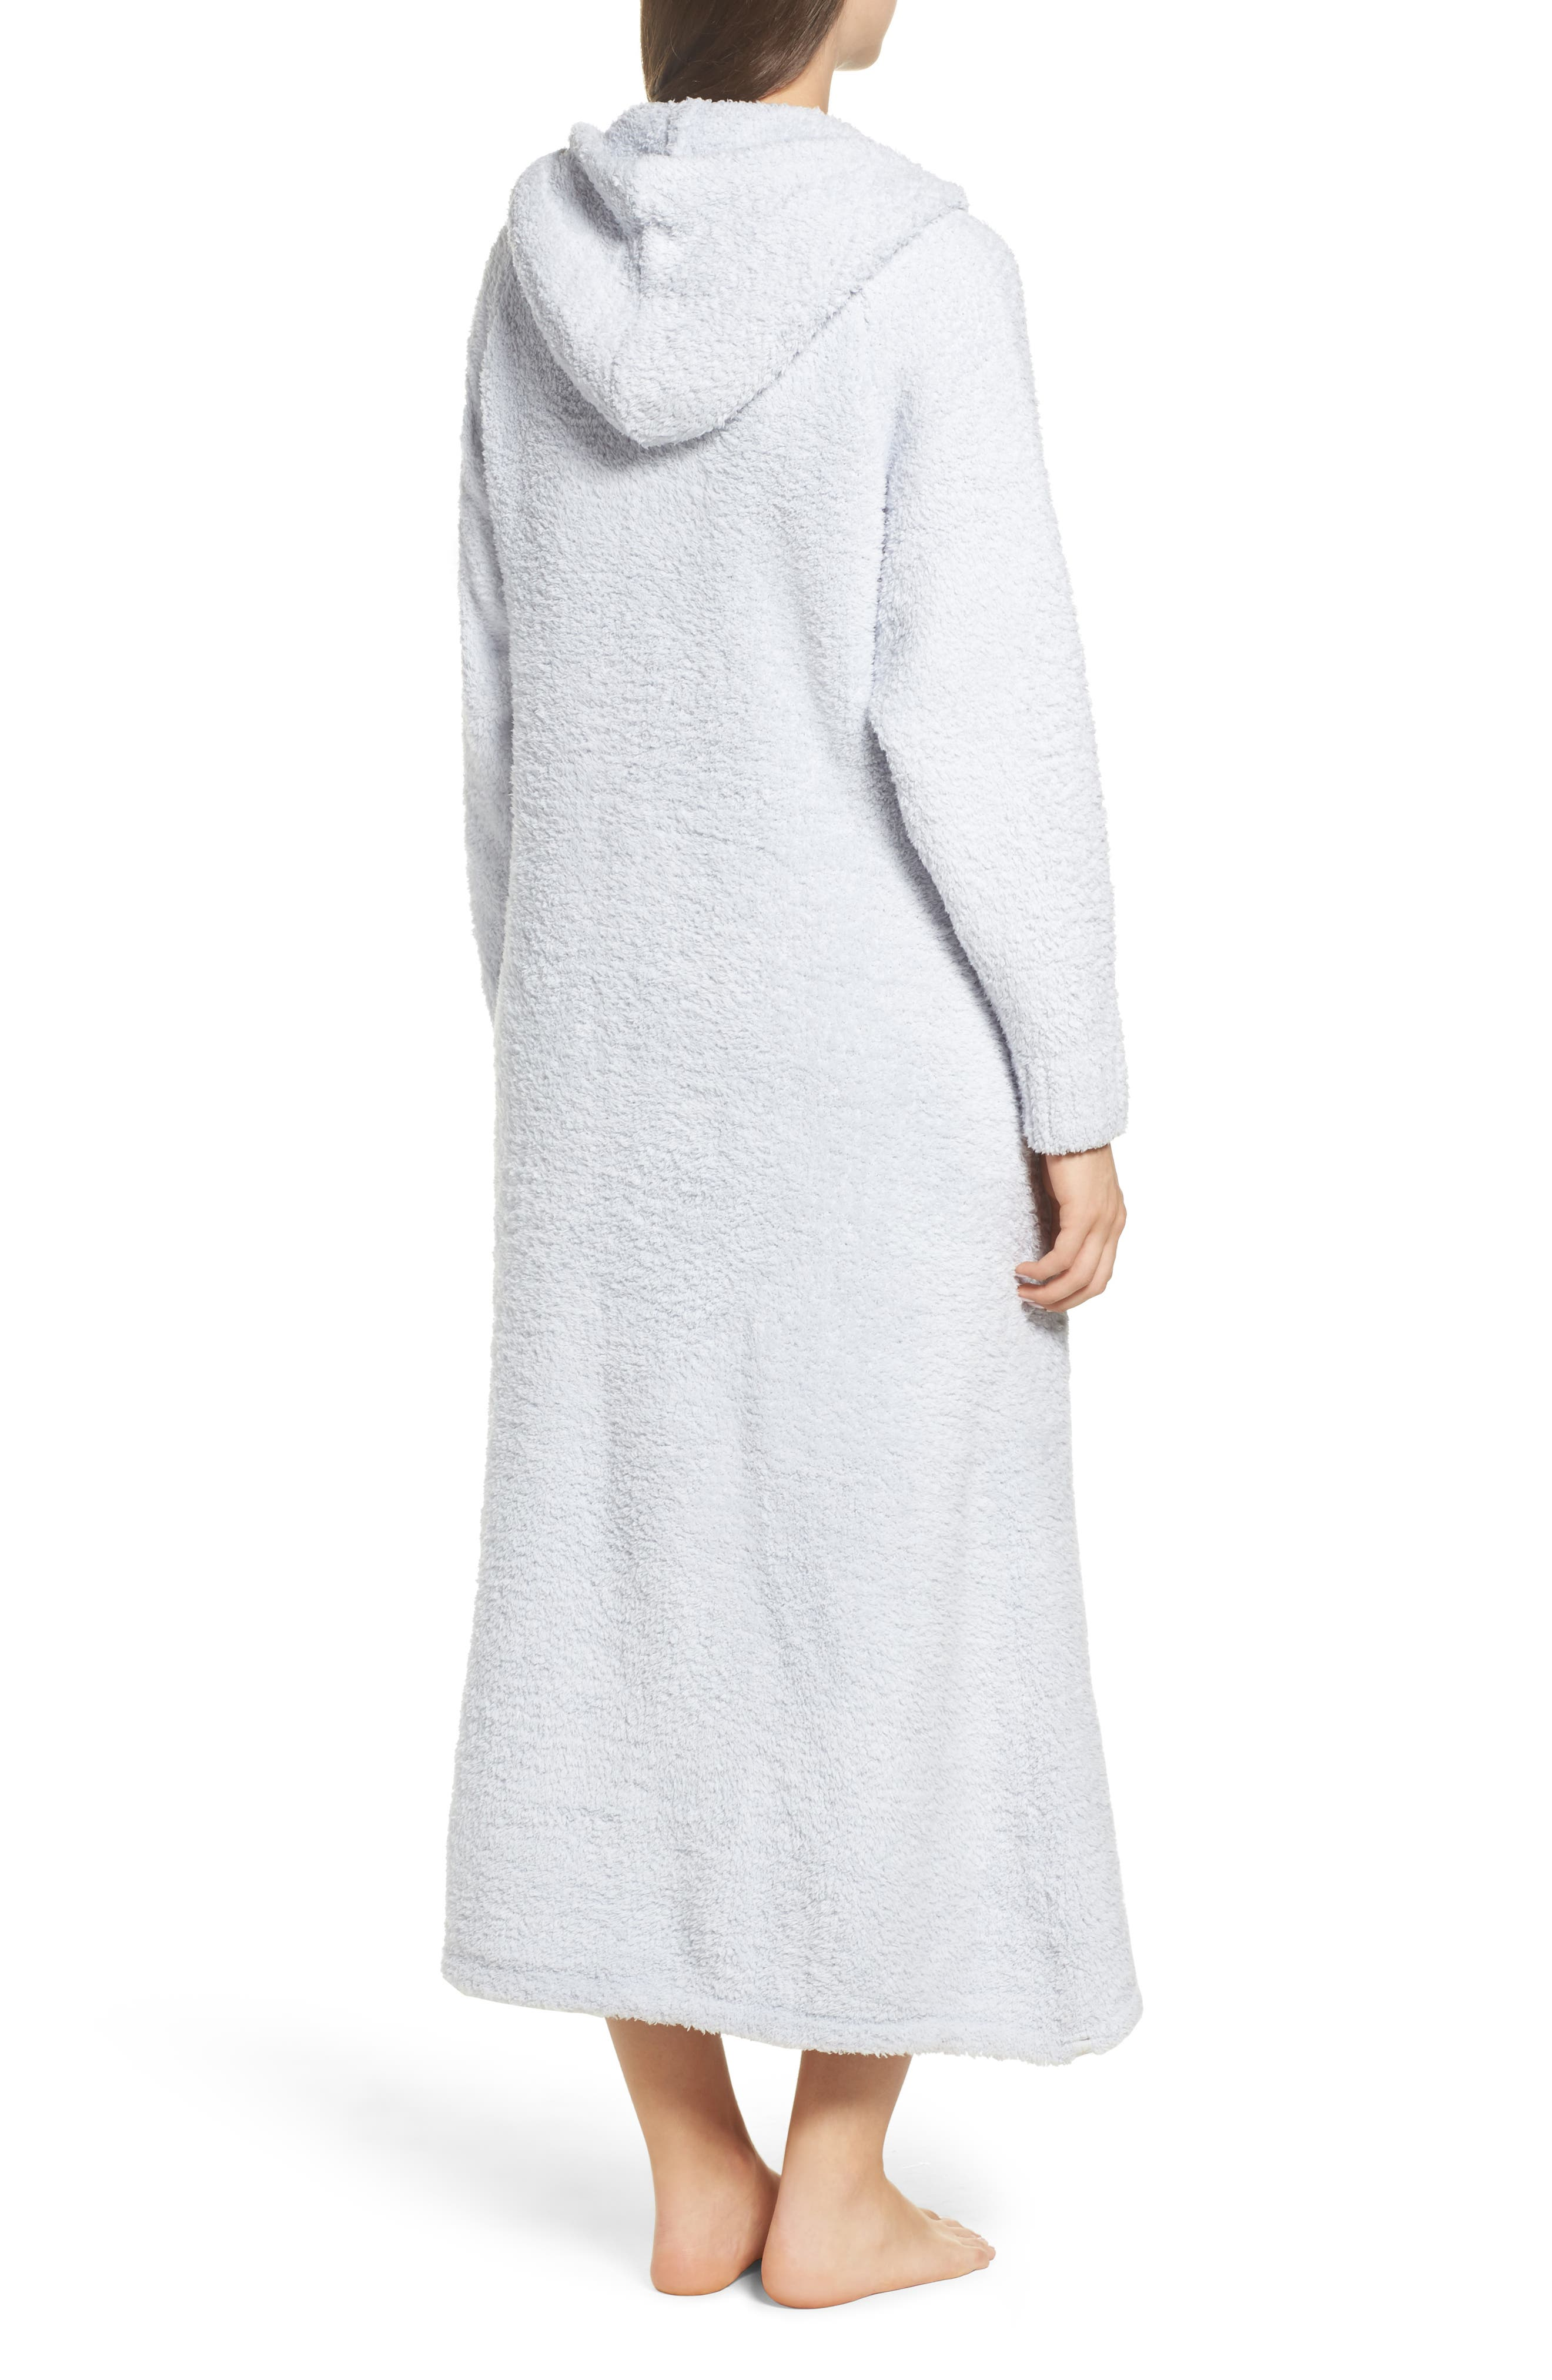 CozyChic<sup>®</sup> Hooded Zip Robe,                             Alternate thumbnail 2, color,                             BLUE